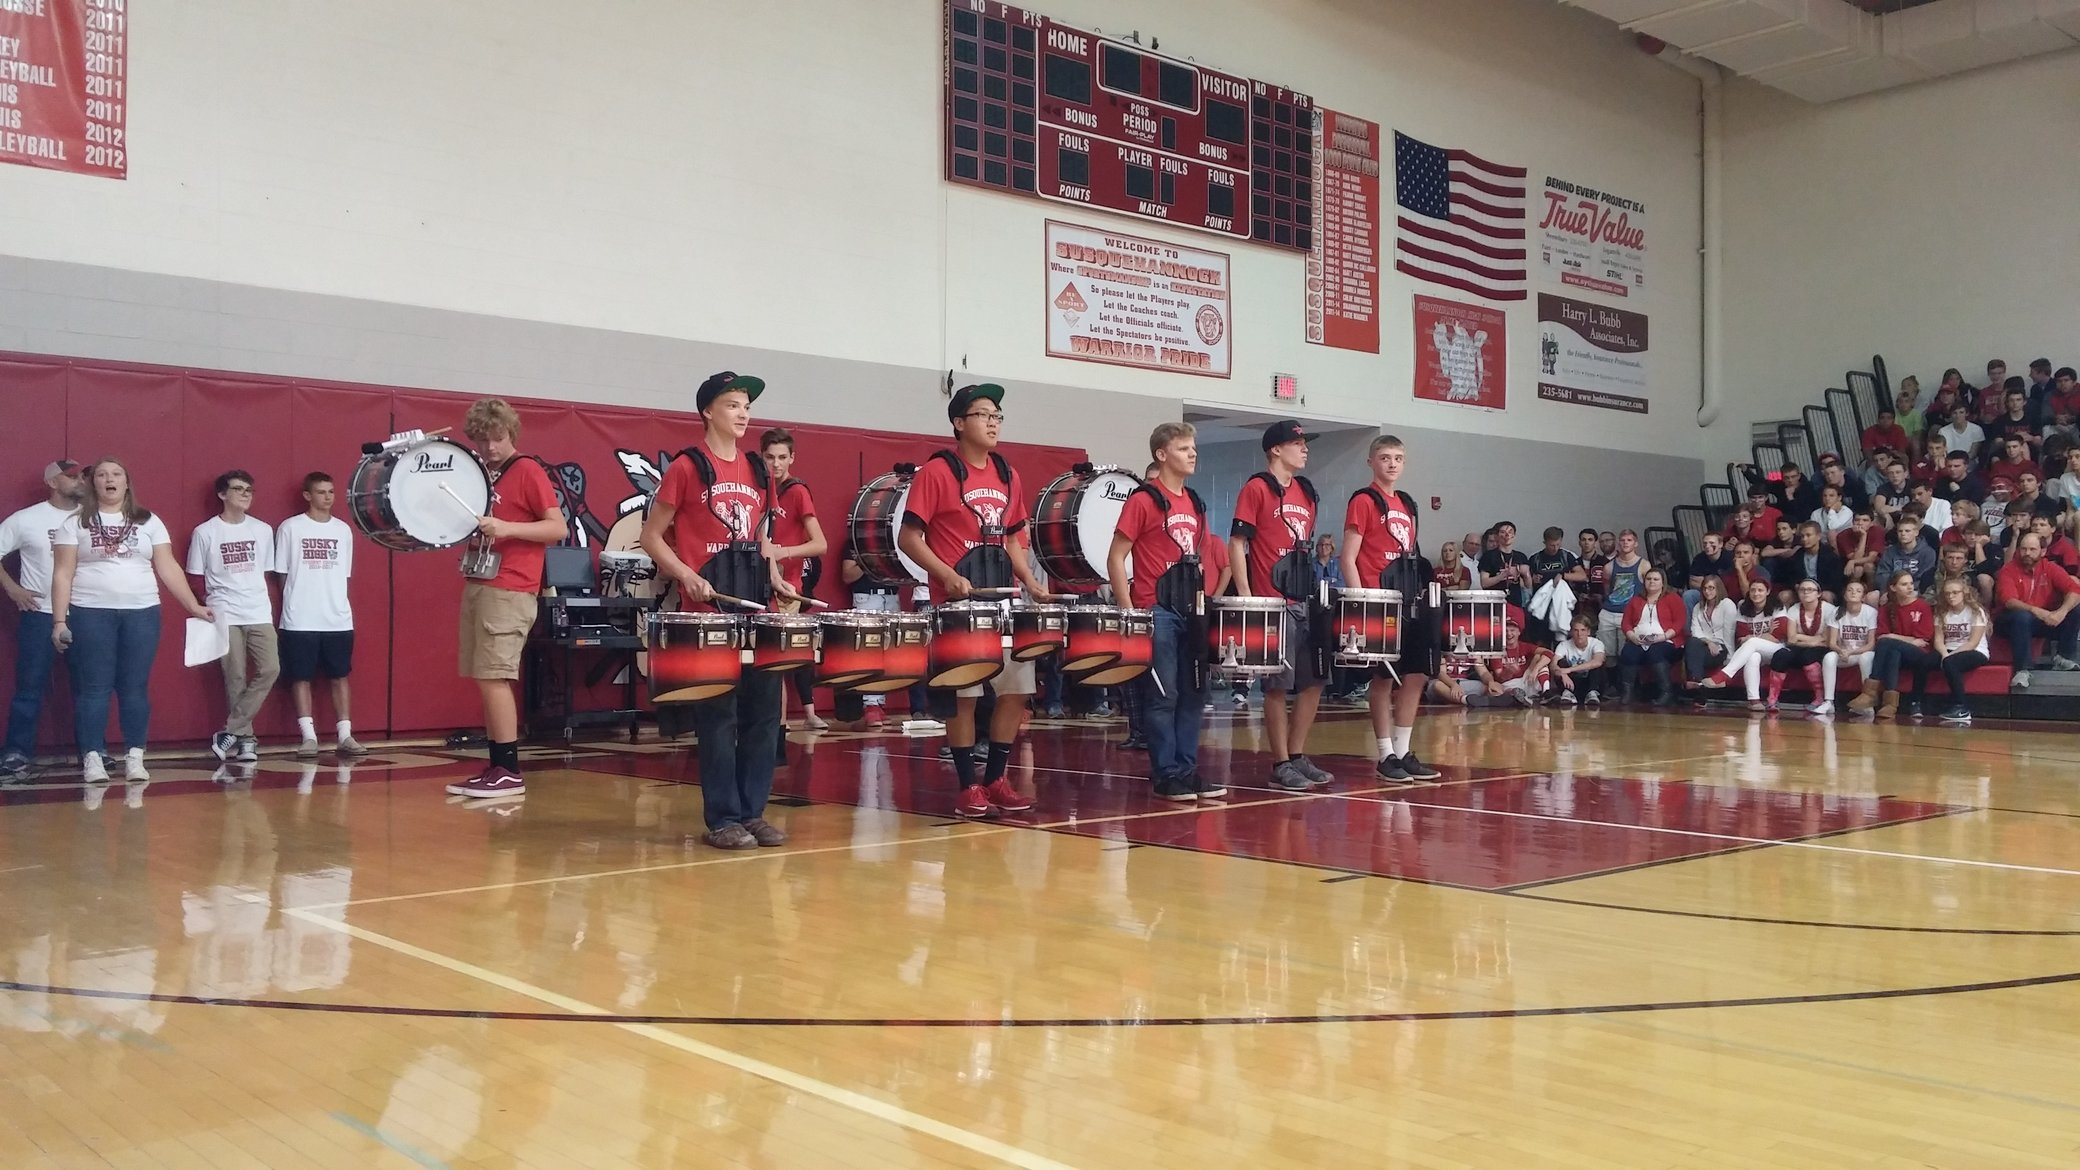 The Susquehannock drum line. Photo by: Ariel Barbera